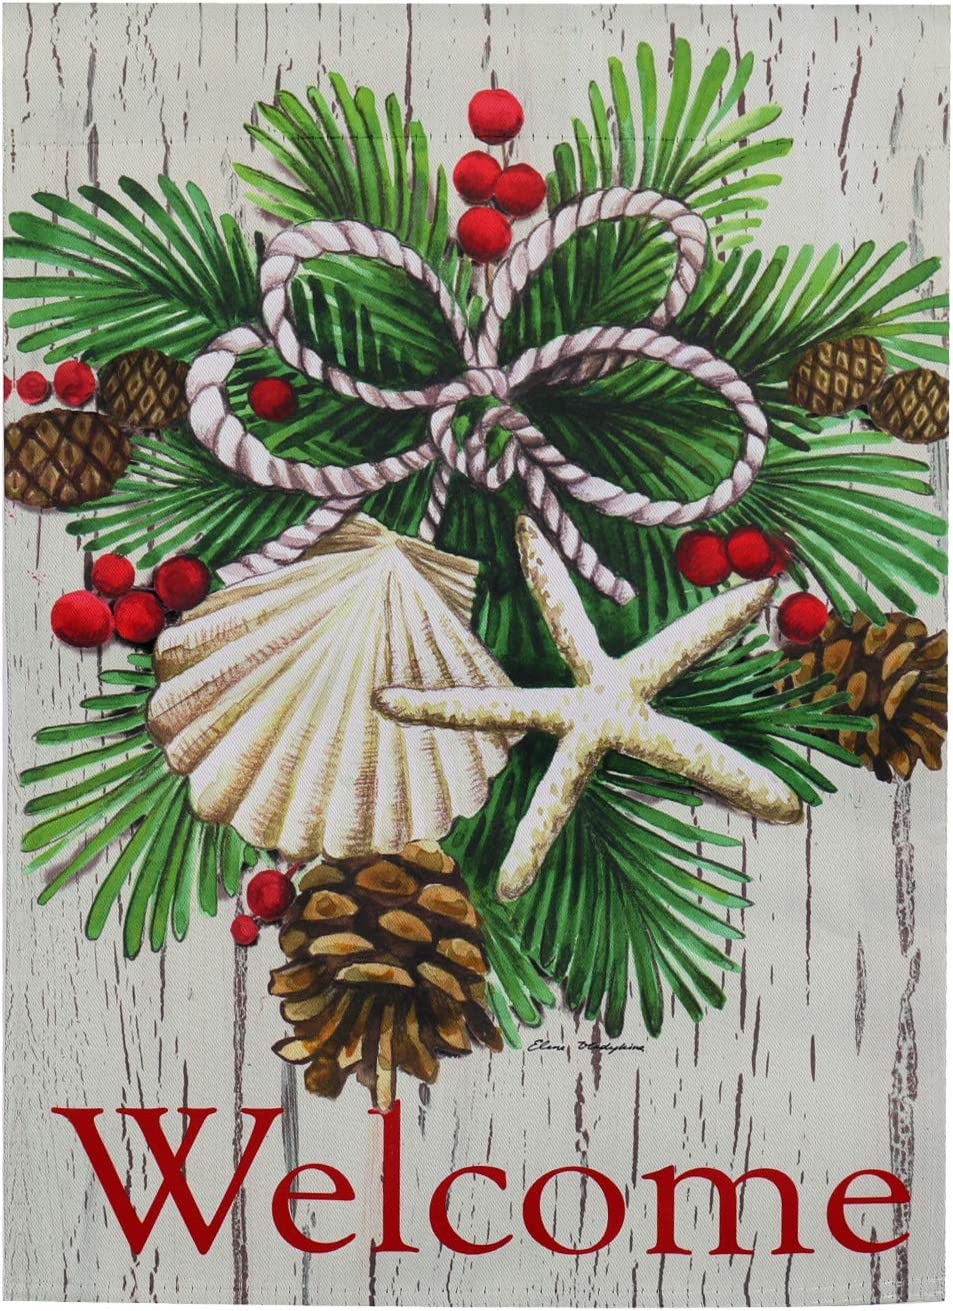 Evergreen Flag Coastal Christmas Garden Flag 12.5 x 18 Inches Double Sided Outdoor Safe Holiday Welcome Flag for Gardens and Yards